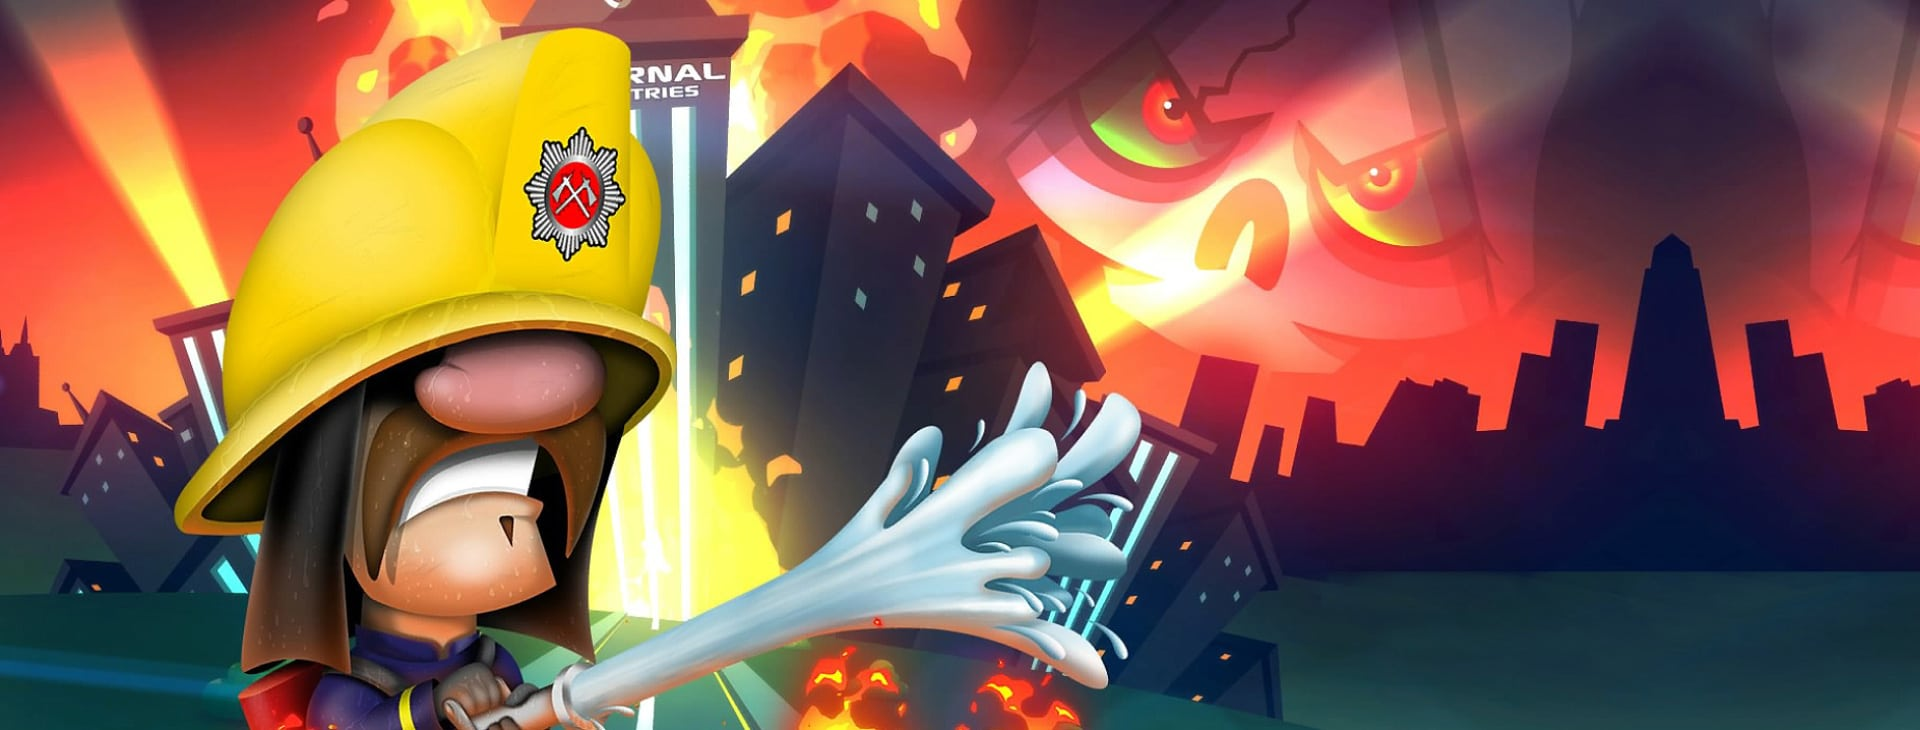 Flame Over Heats Up PS4 on September 15th